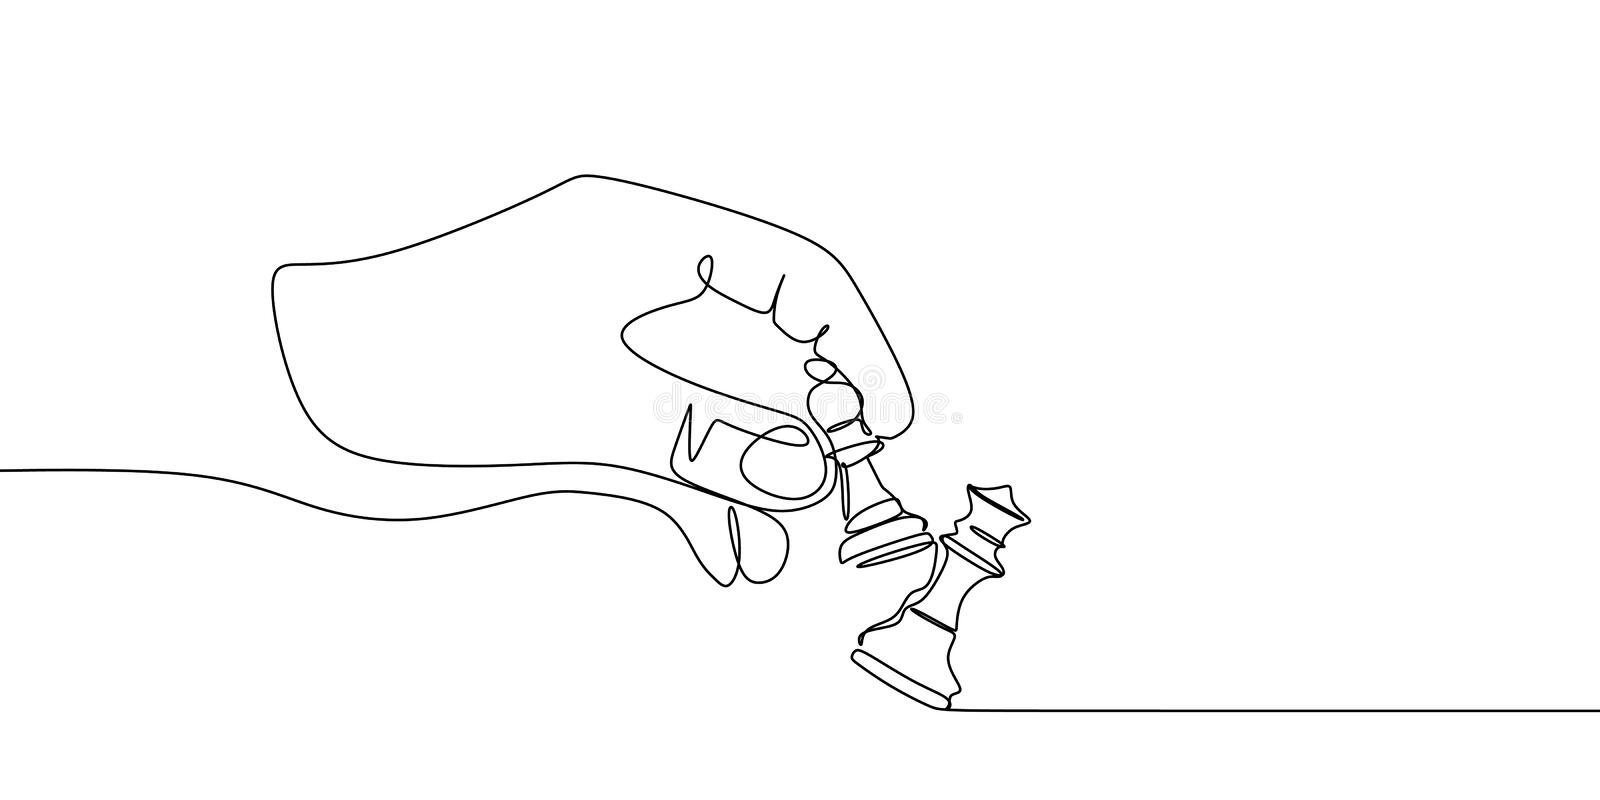 Pawn and queen chess pieces are drawn by one black line on a white background. Continuous line drawing. Vector illustration royalty free illustration